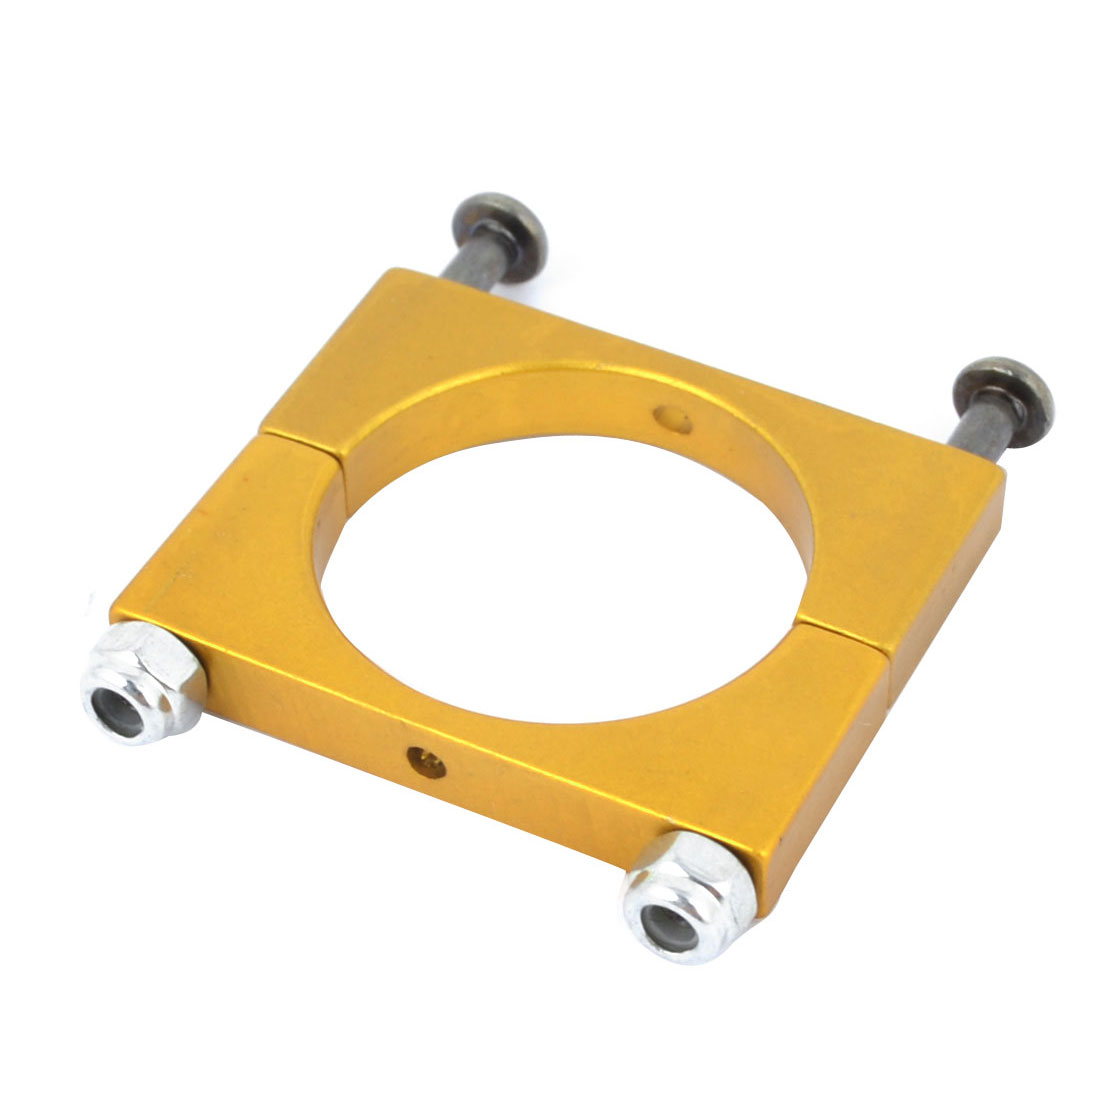 CNC Alloy 22mm Tube Boom Mount Motor Clamp for DIY Quadcopter Yellow